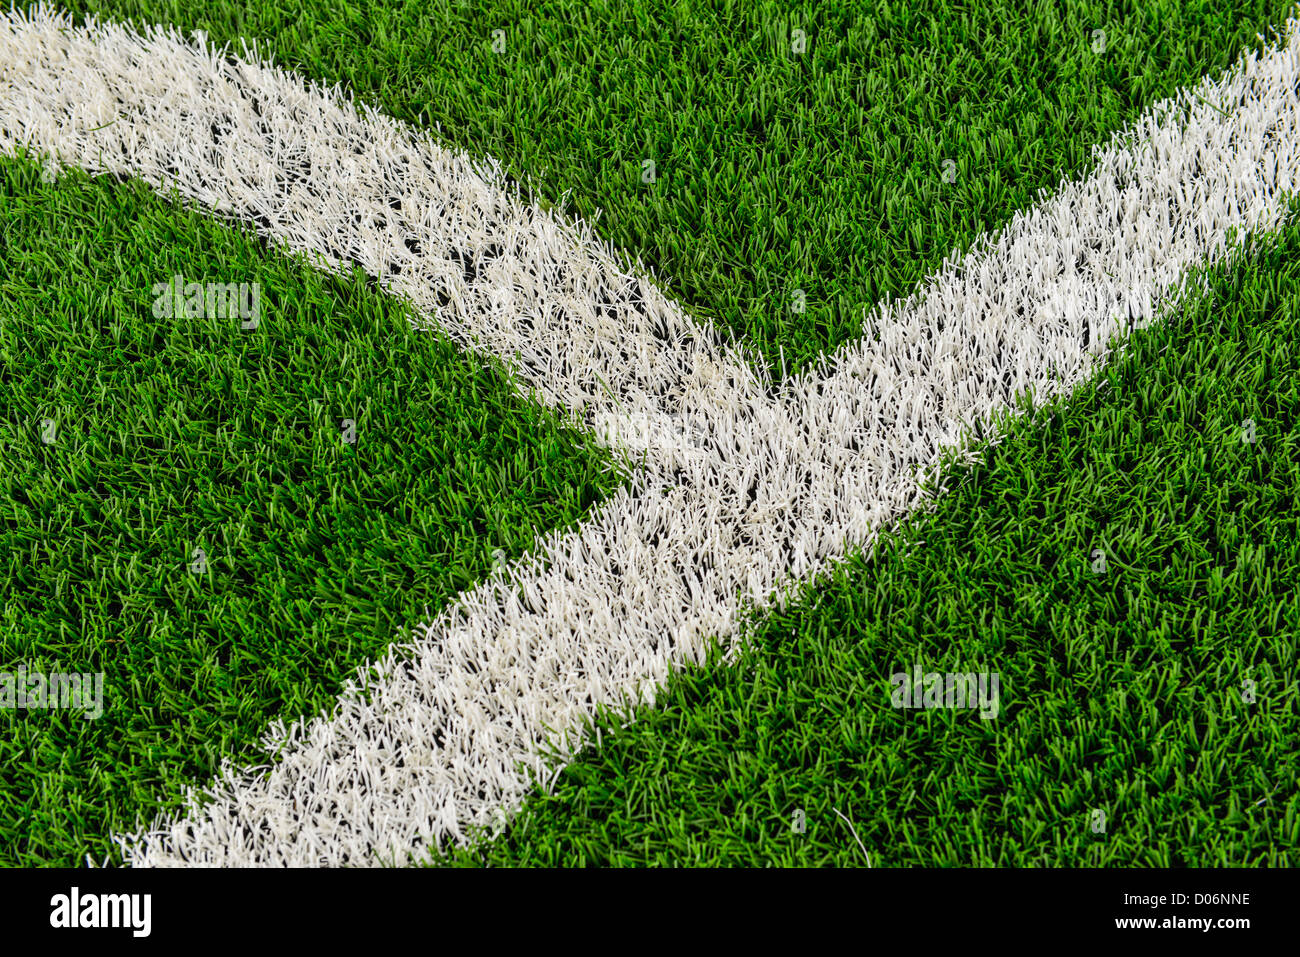 The touch line on a football pitch made of third generation astro turf. - Stock Image